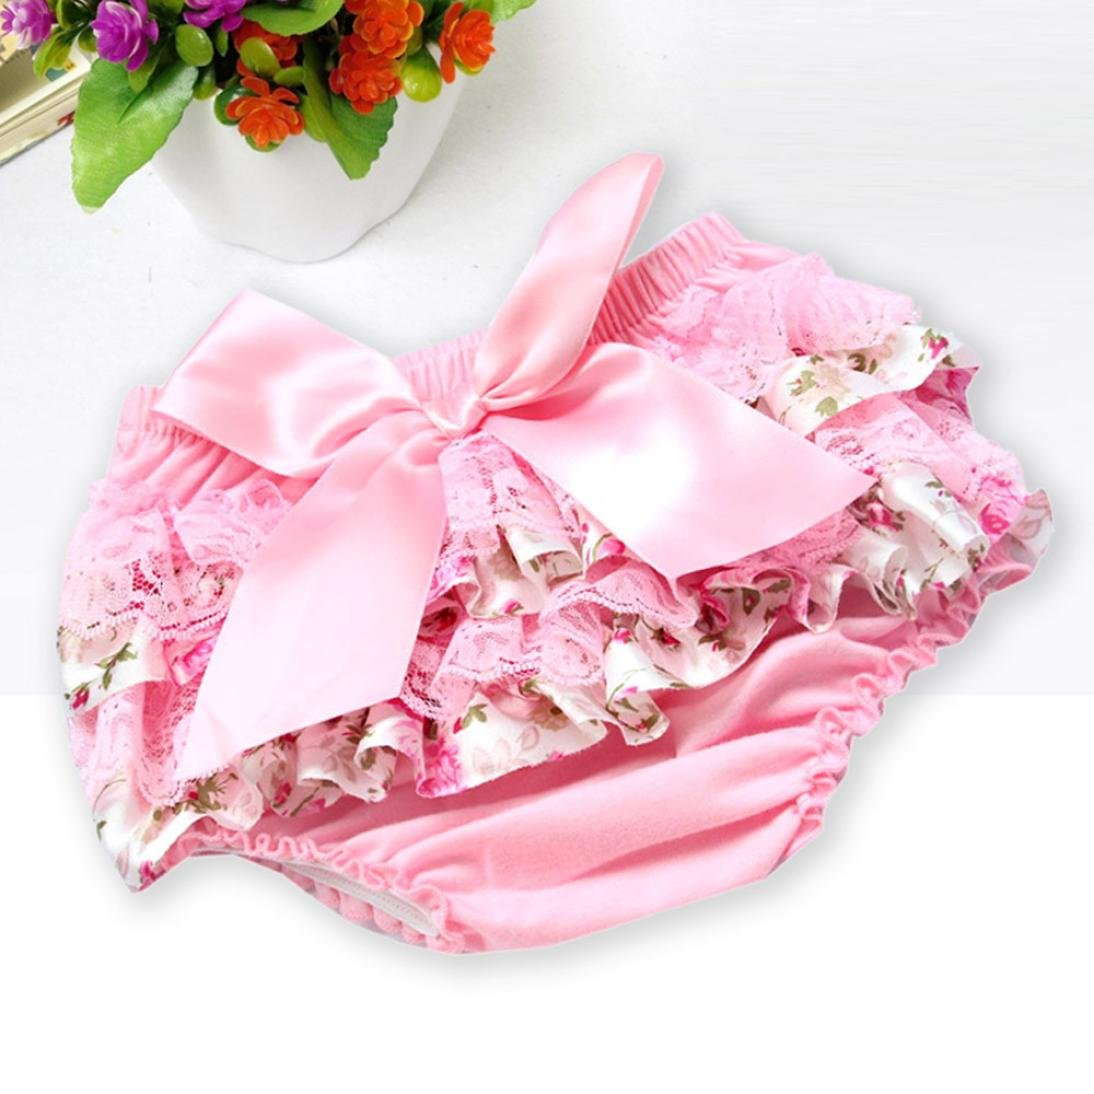 Zerototens Baby Girls Shorts,Newborn Infant Kids Lovely Lace Ruffle Bowknot Bloomer Nappy Panty Diaper Cover Cotton Underwear Pyjamas Casual Short Trousers